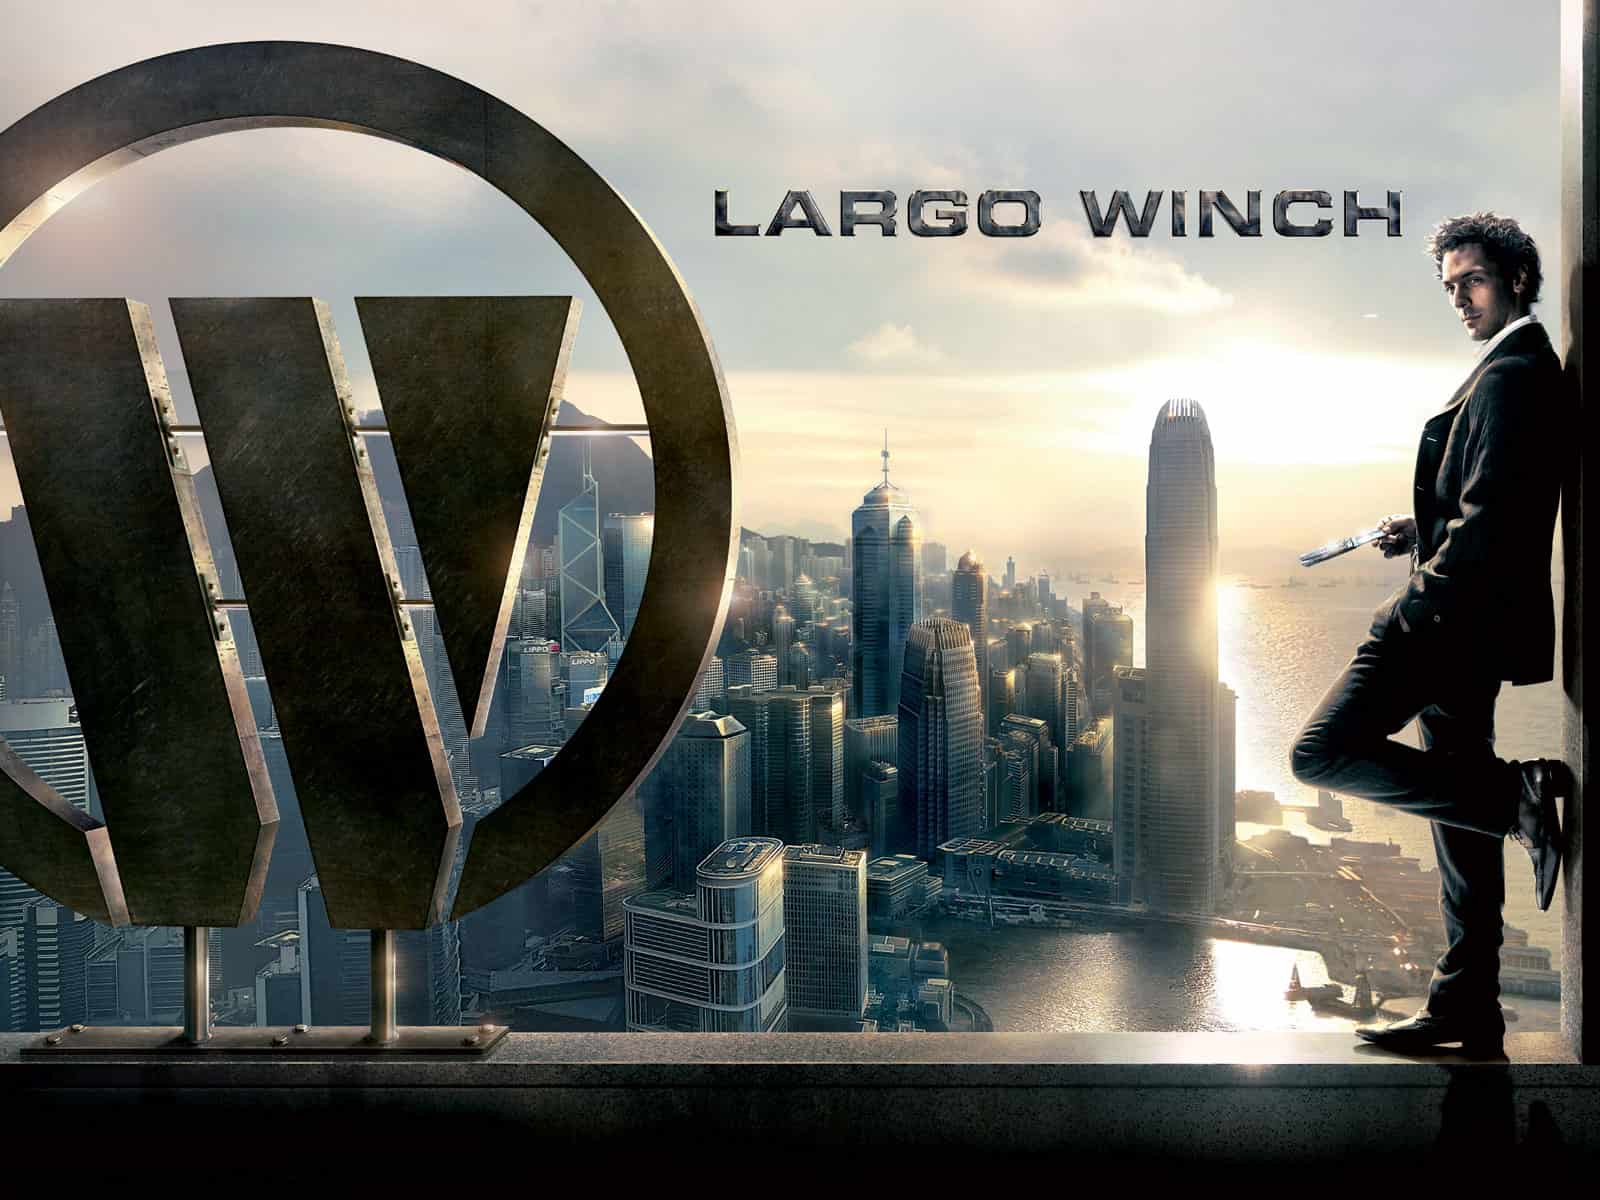 LargLargo Winch (aka. The Heir Apparent) (2008)